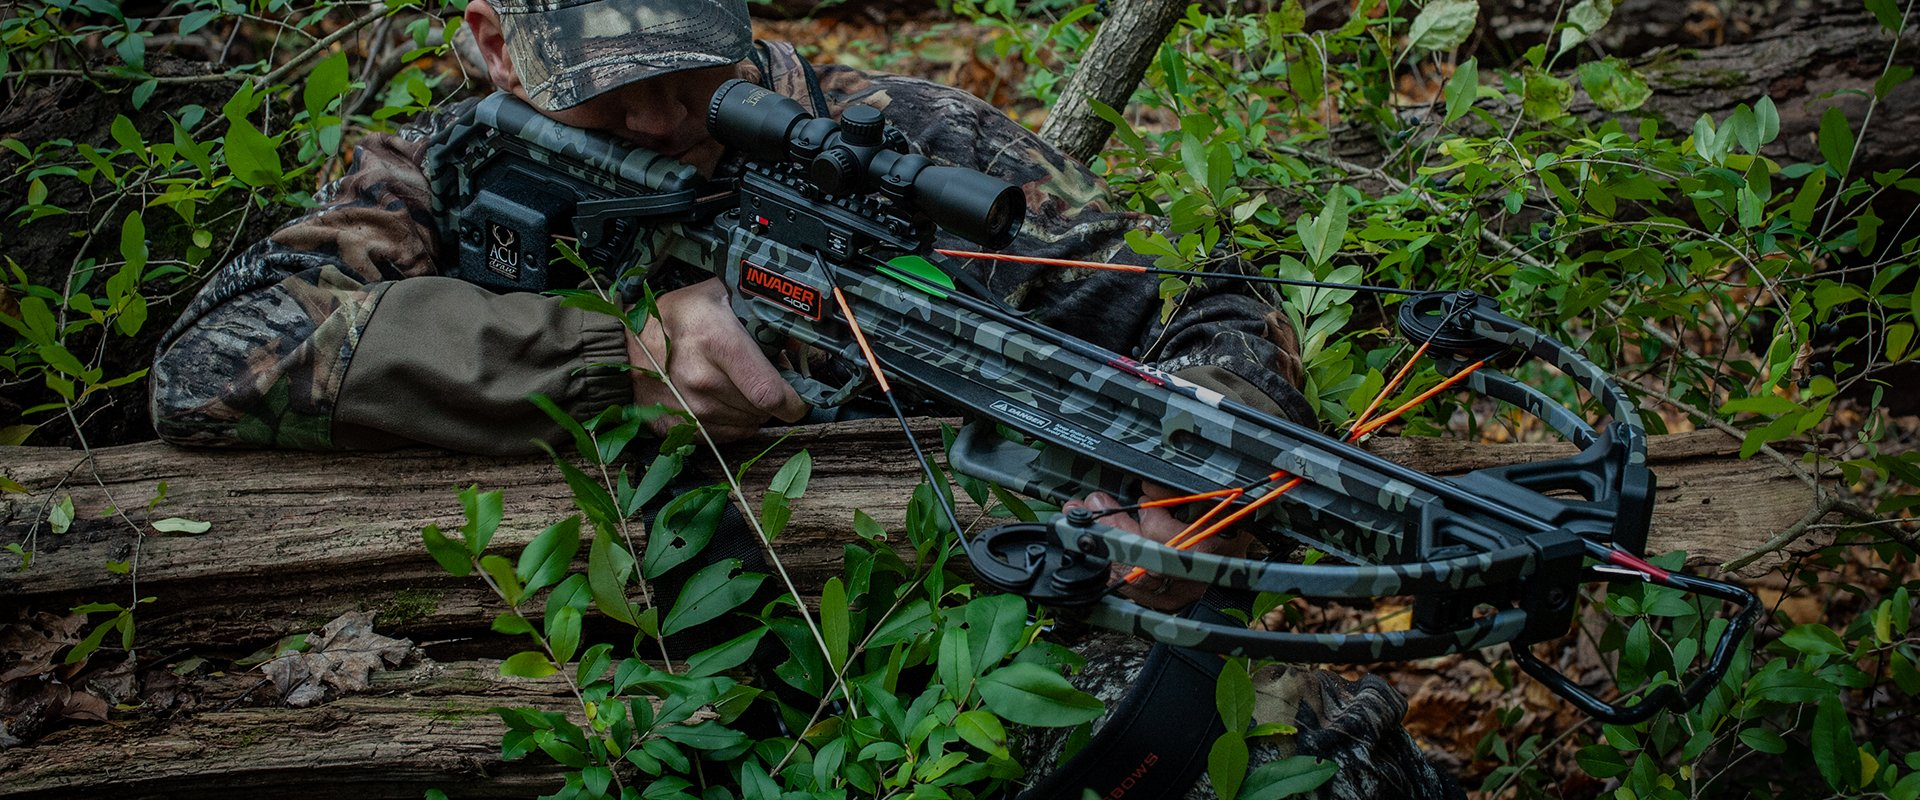 Wicked Ridge Invader 400 Crossbow in the Woods